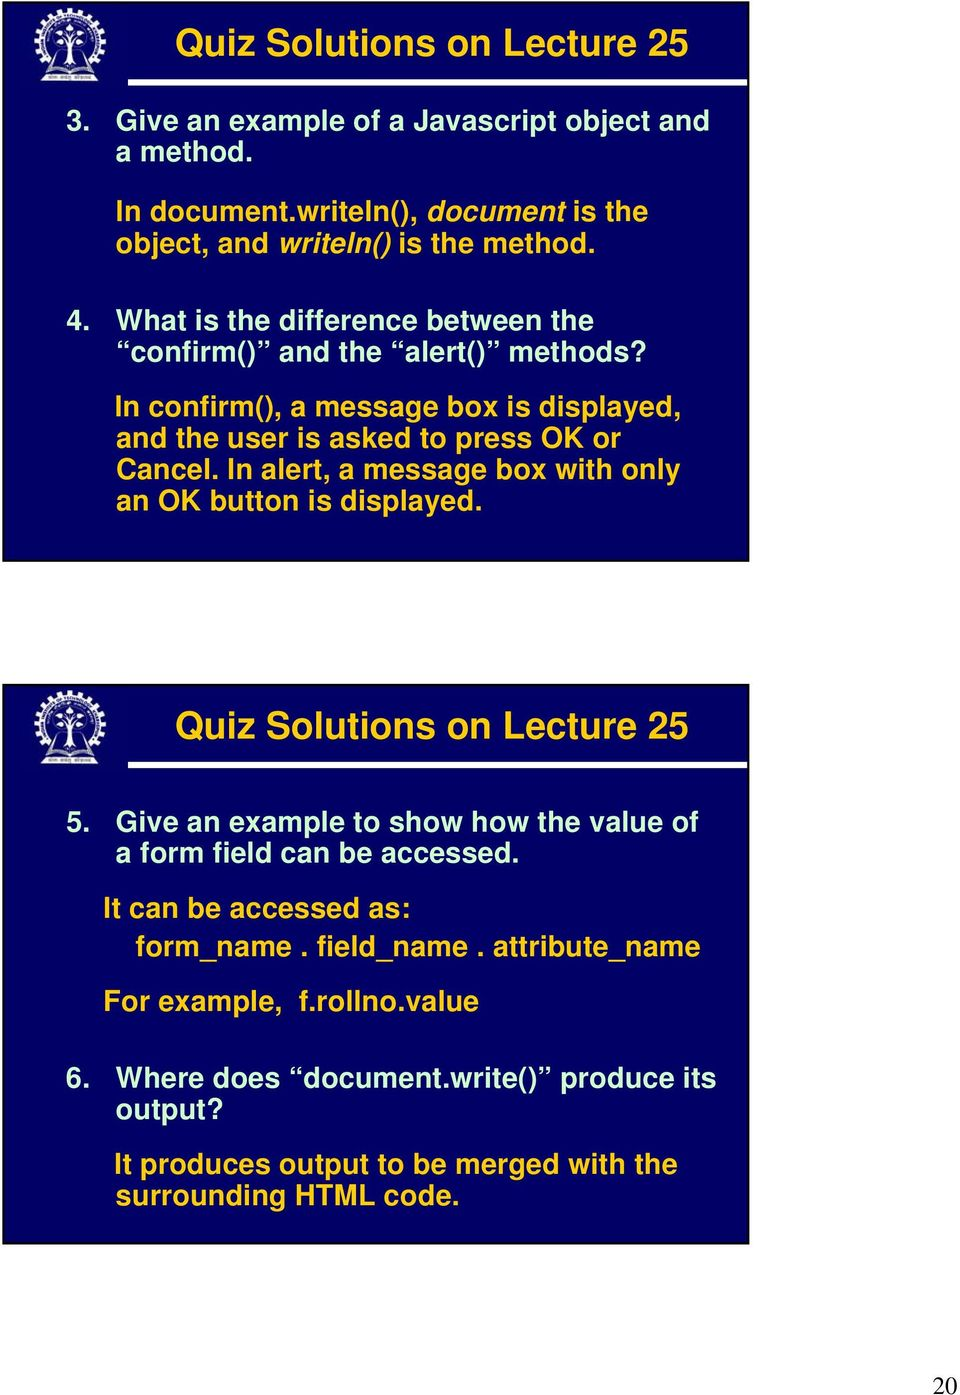 Indian Institute of Technology Kharagpur  Javascript Part II  Prof